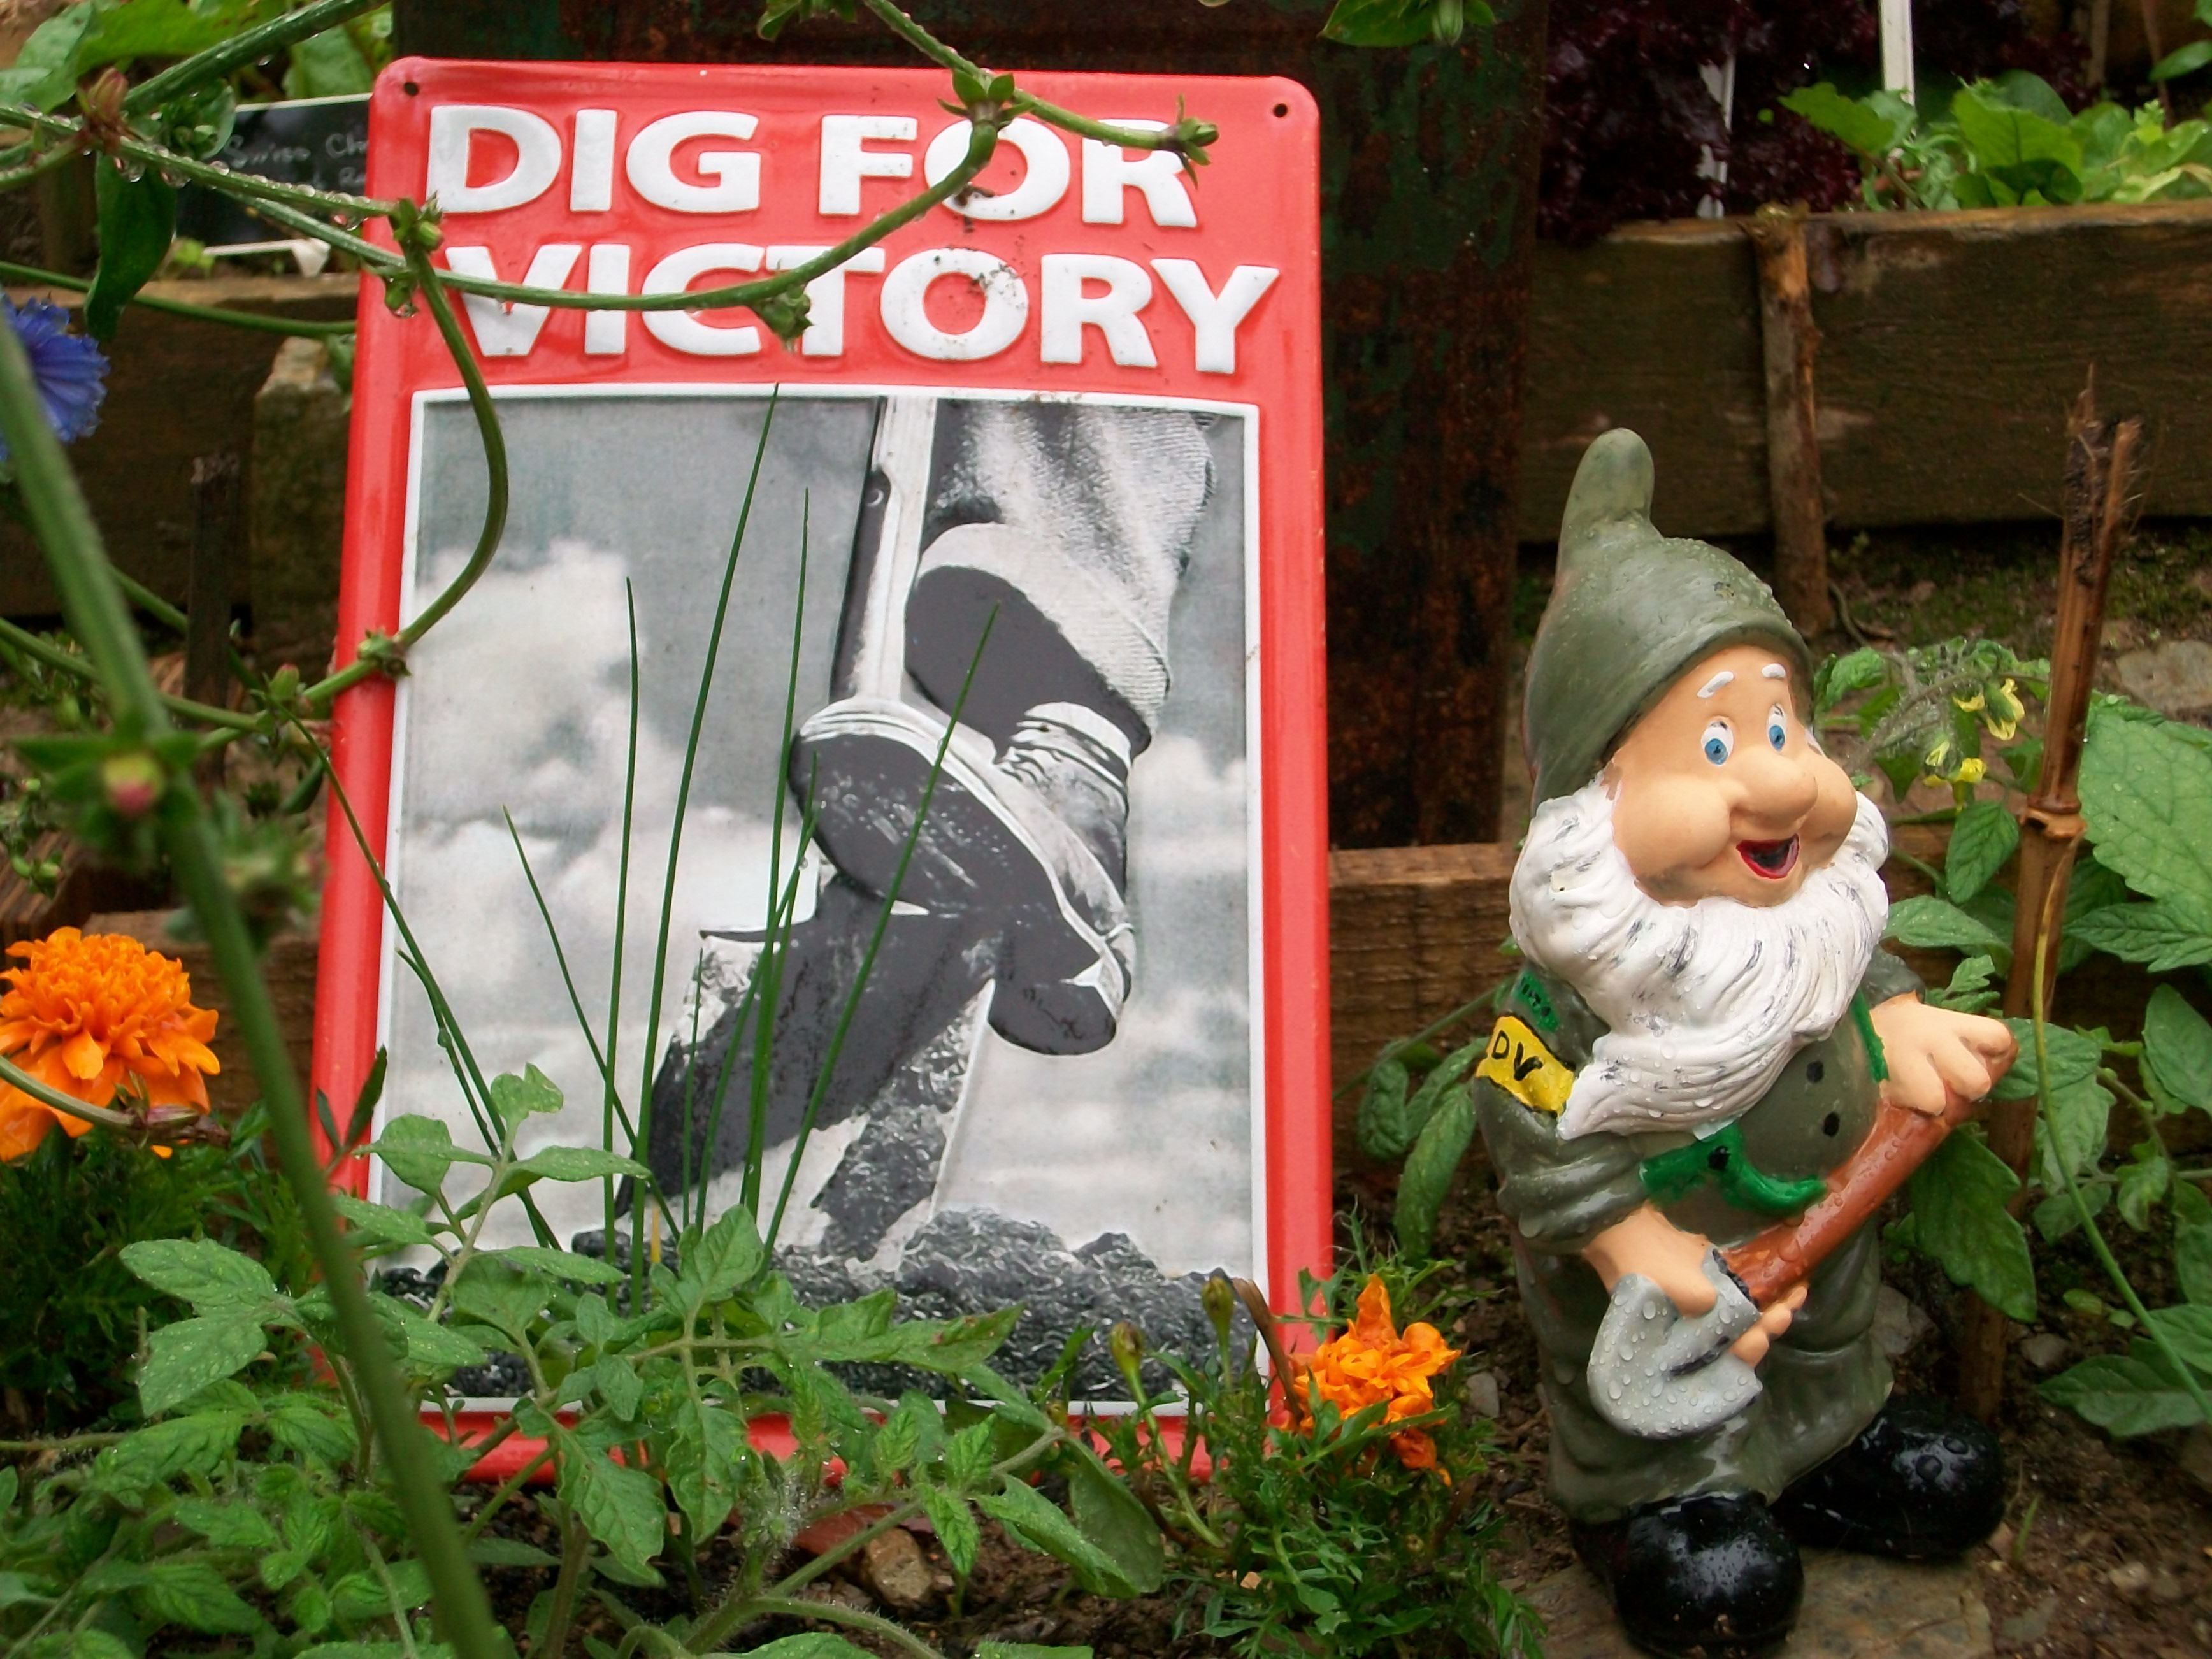 Gnome In Garden: Gnome Guard, Home Guards, Meerkats, Wartime Gardens And